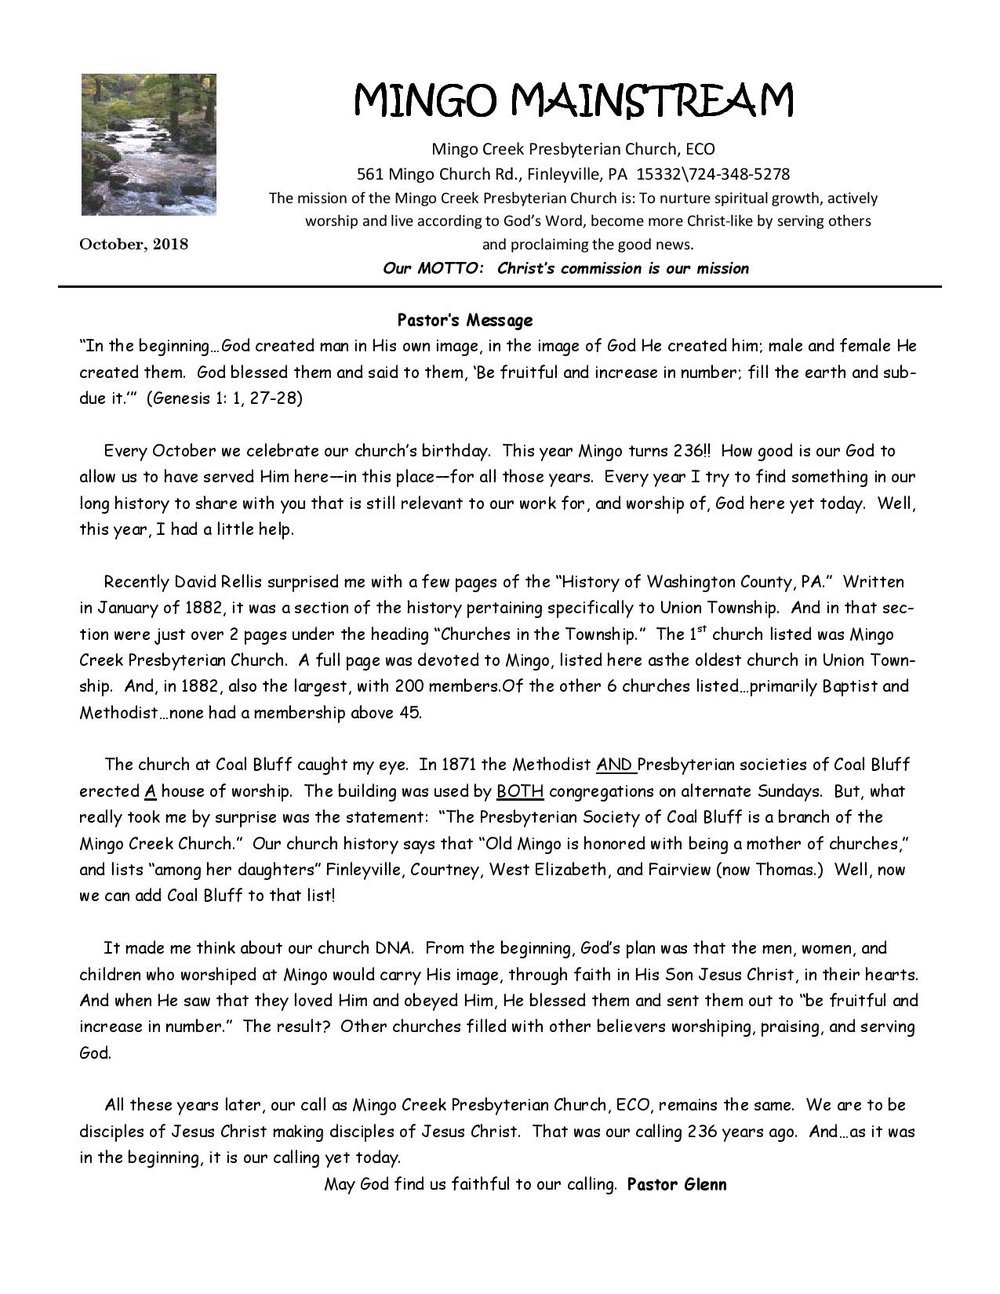 OCTOBER NEWSLETTER (1)-page-001.jpg